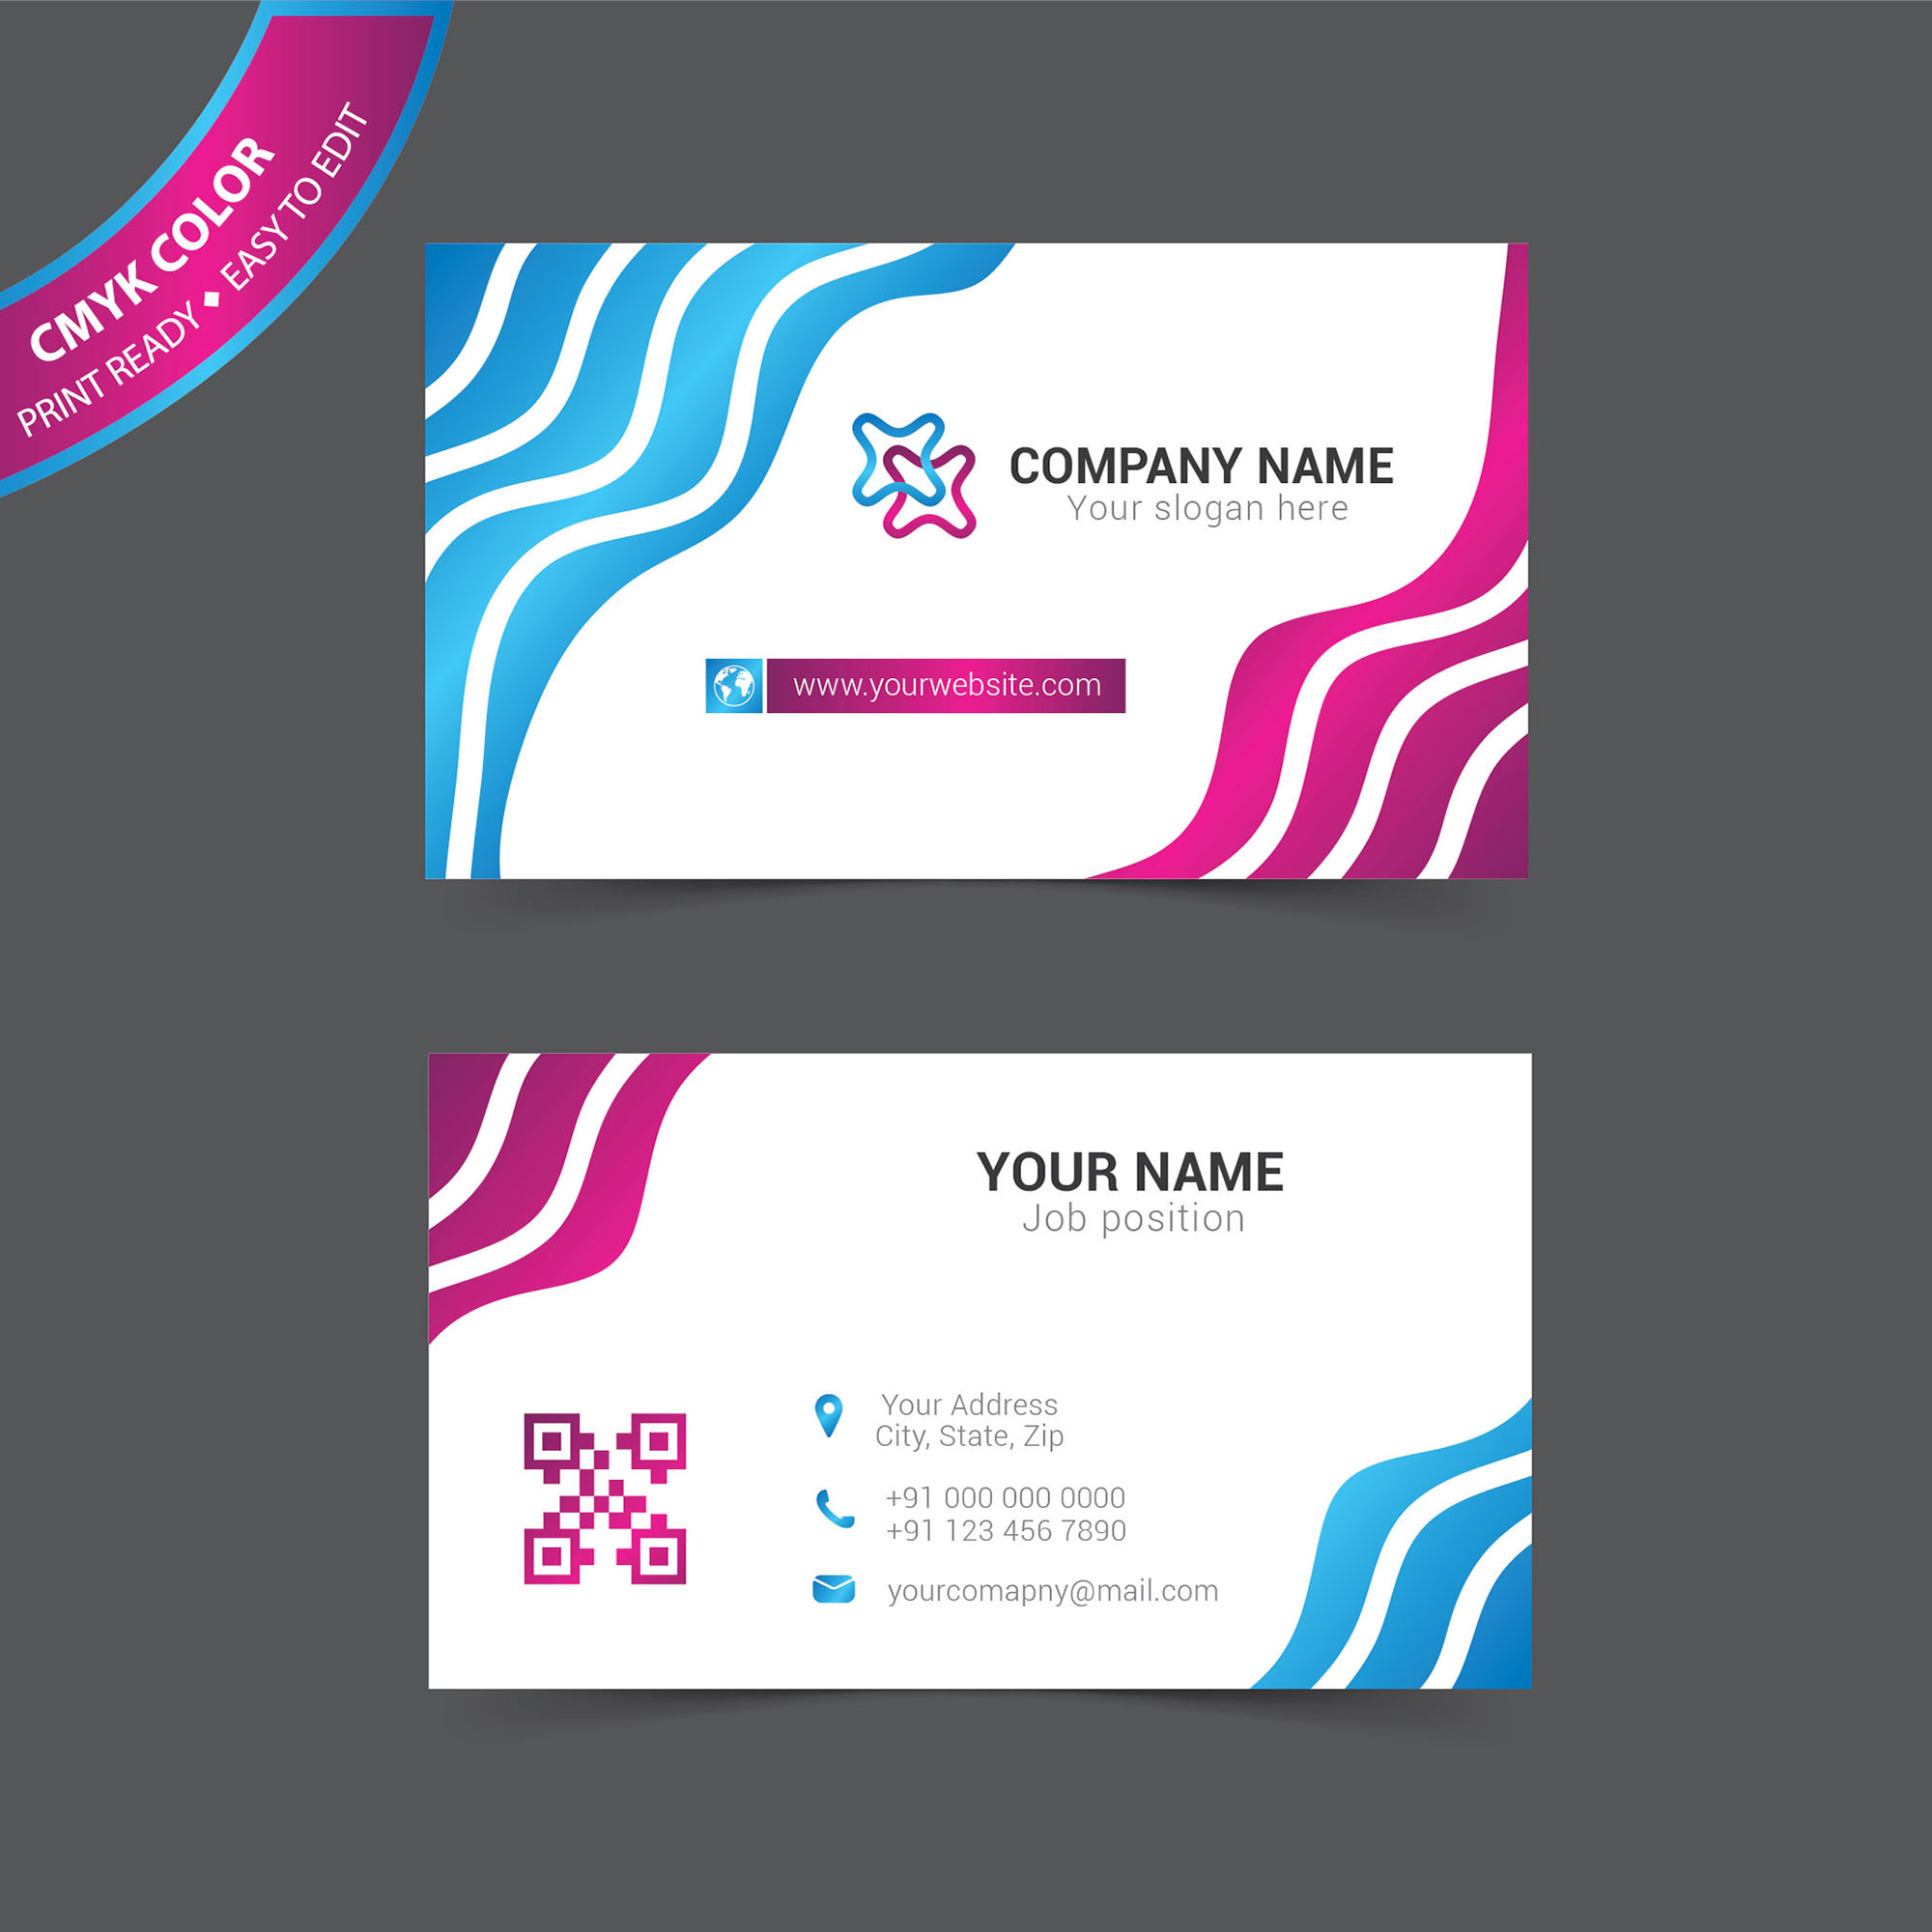 Digital business card free download free vector wisxi business card business cards business card design business card template design templates fbccfo Images